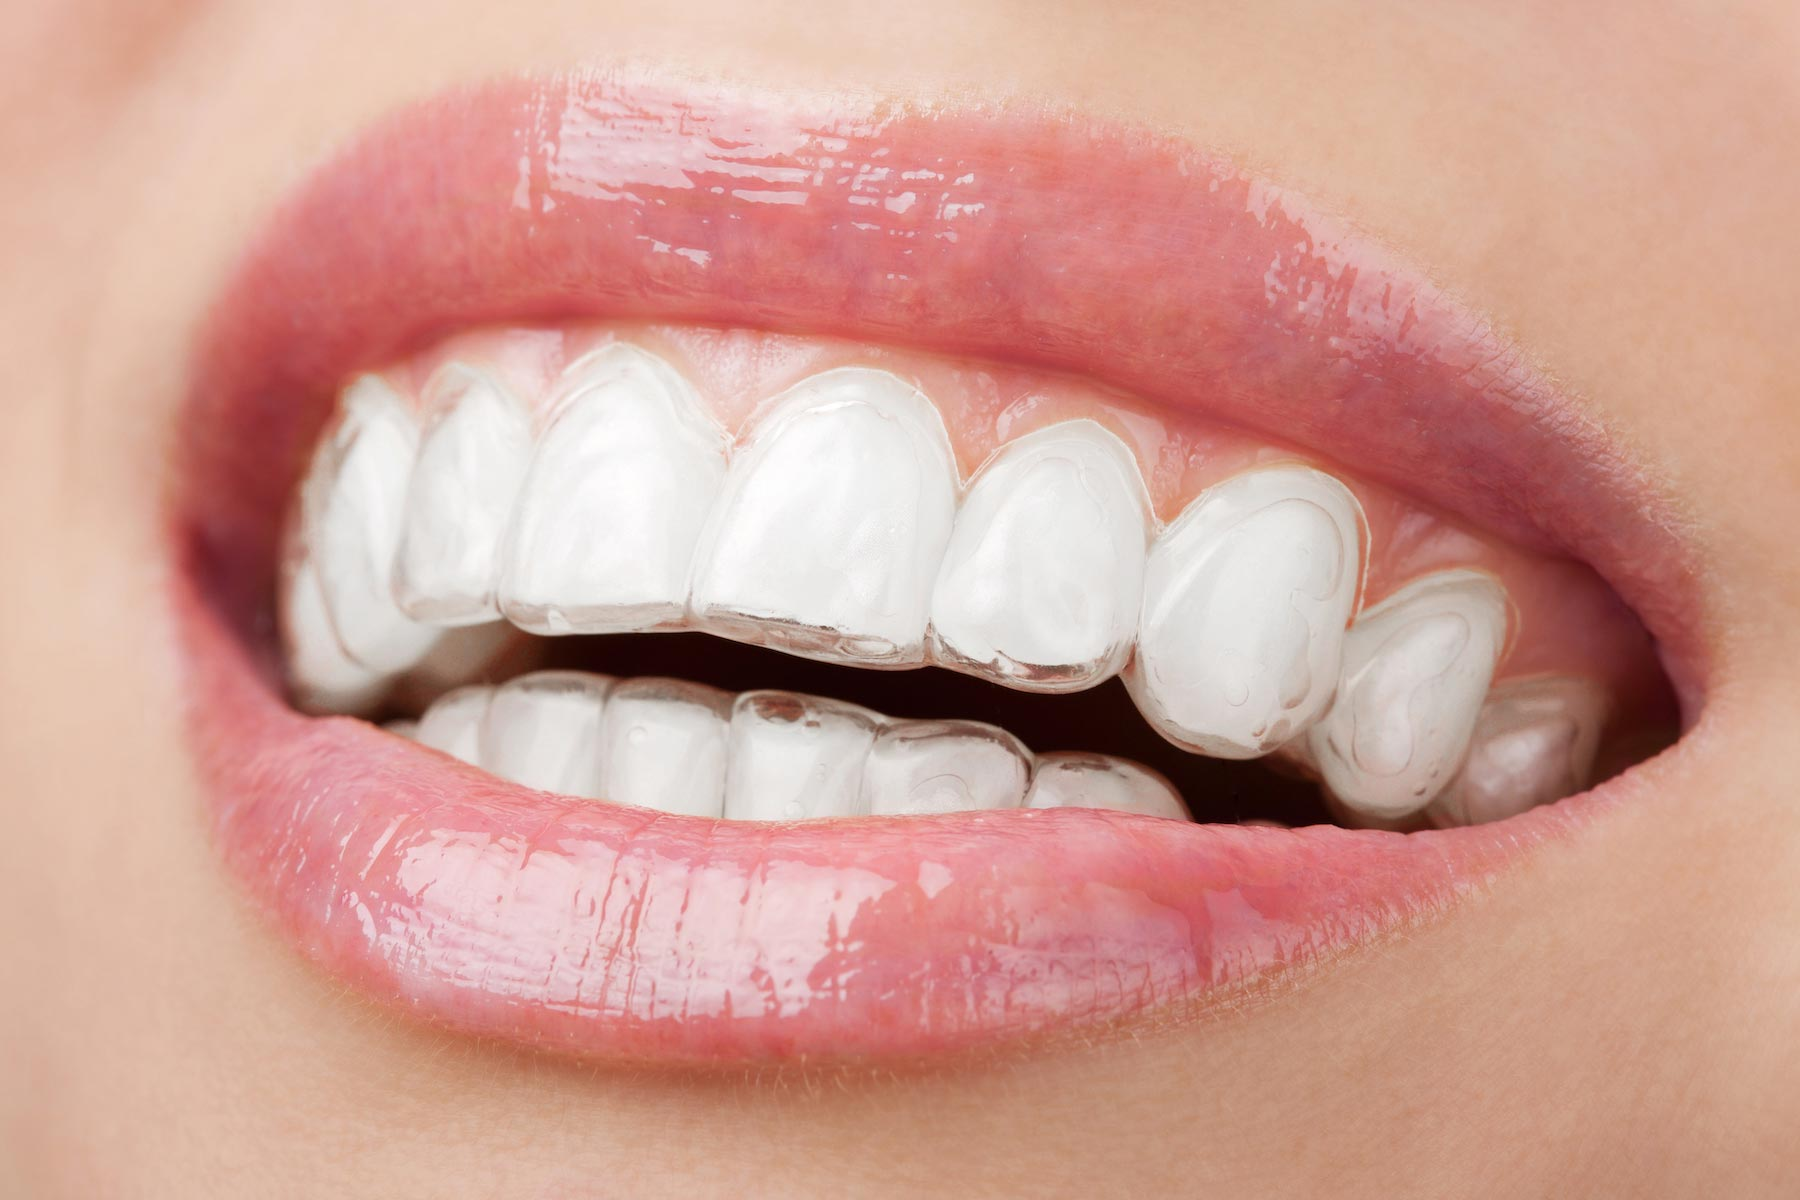 A close up image of mouth and teeth with Invisalign clear aligners fitted to the smiling patient